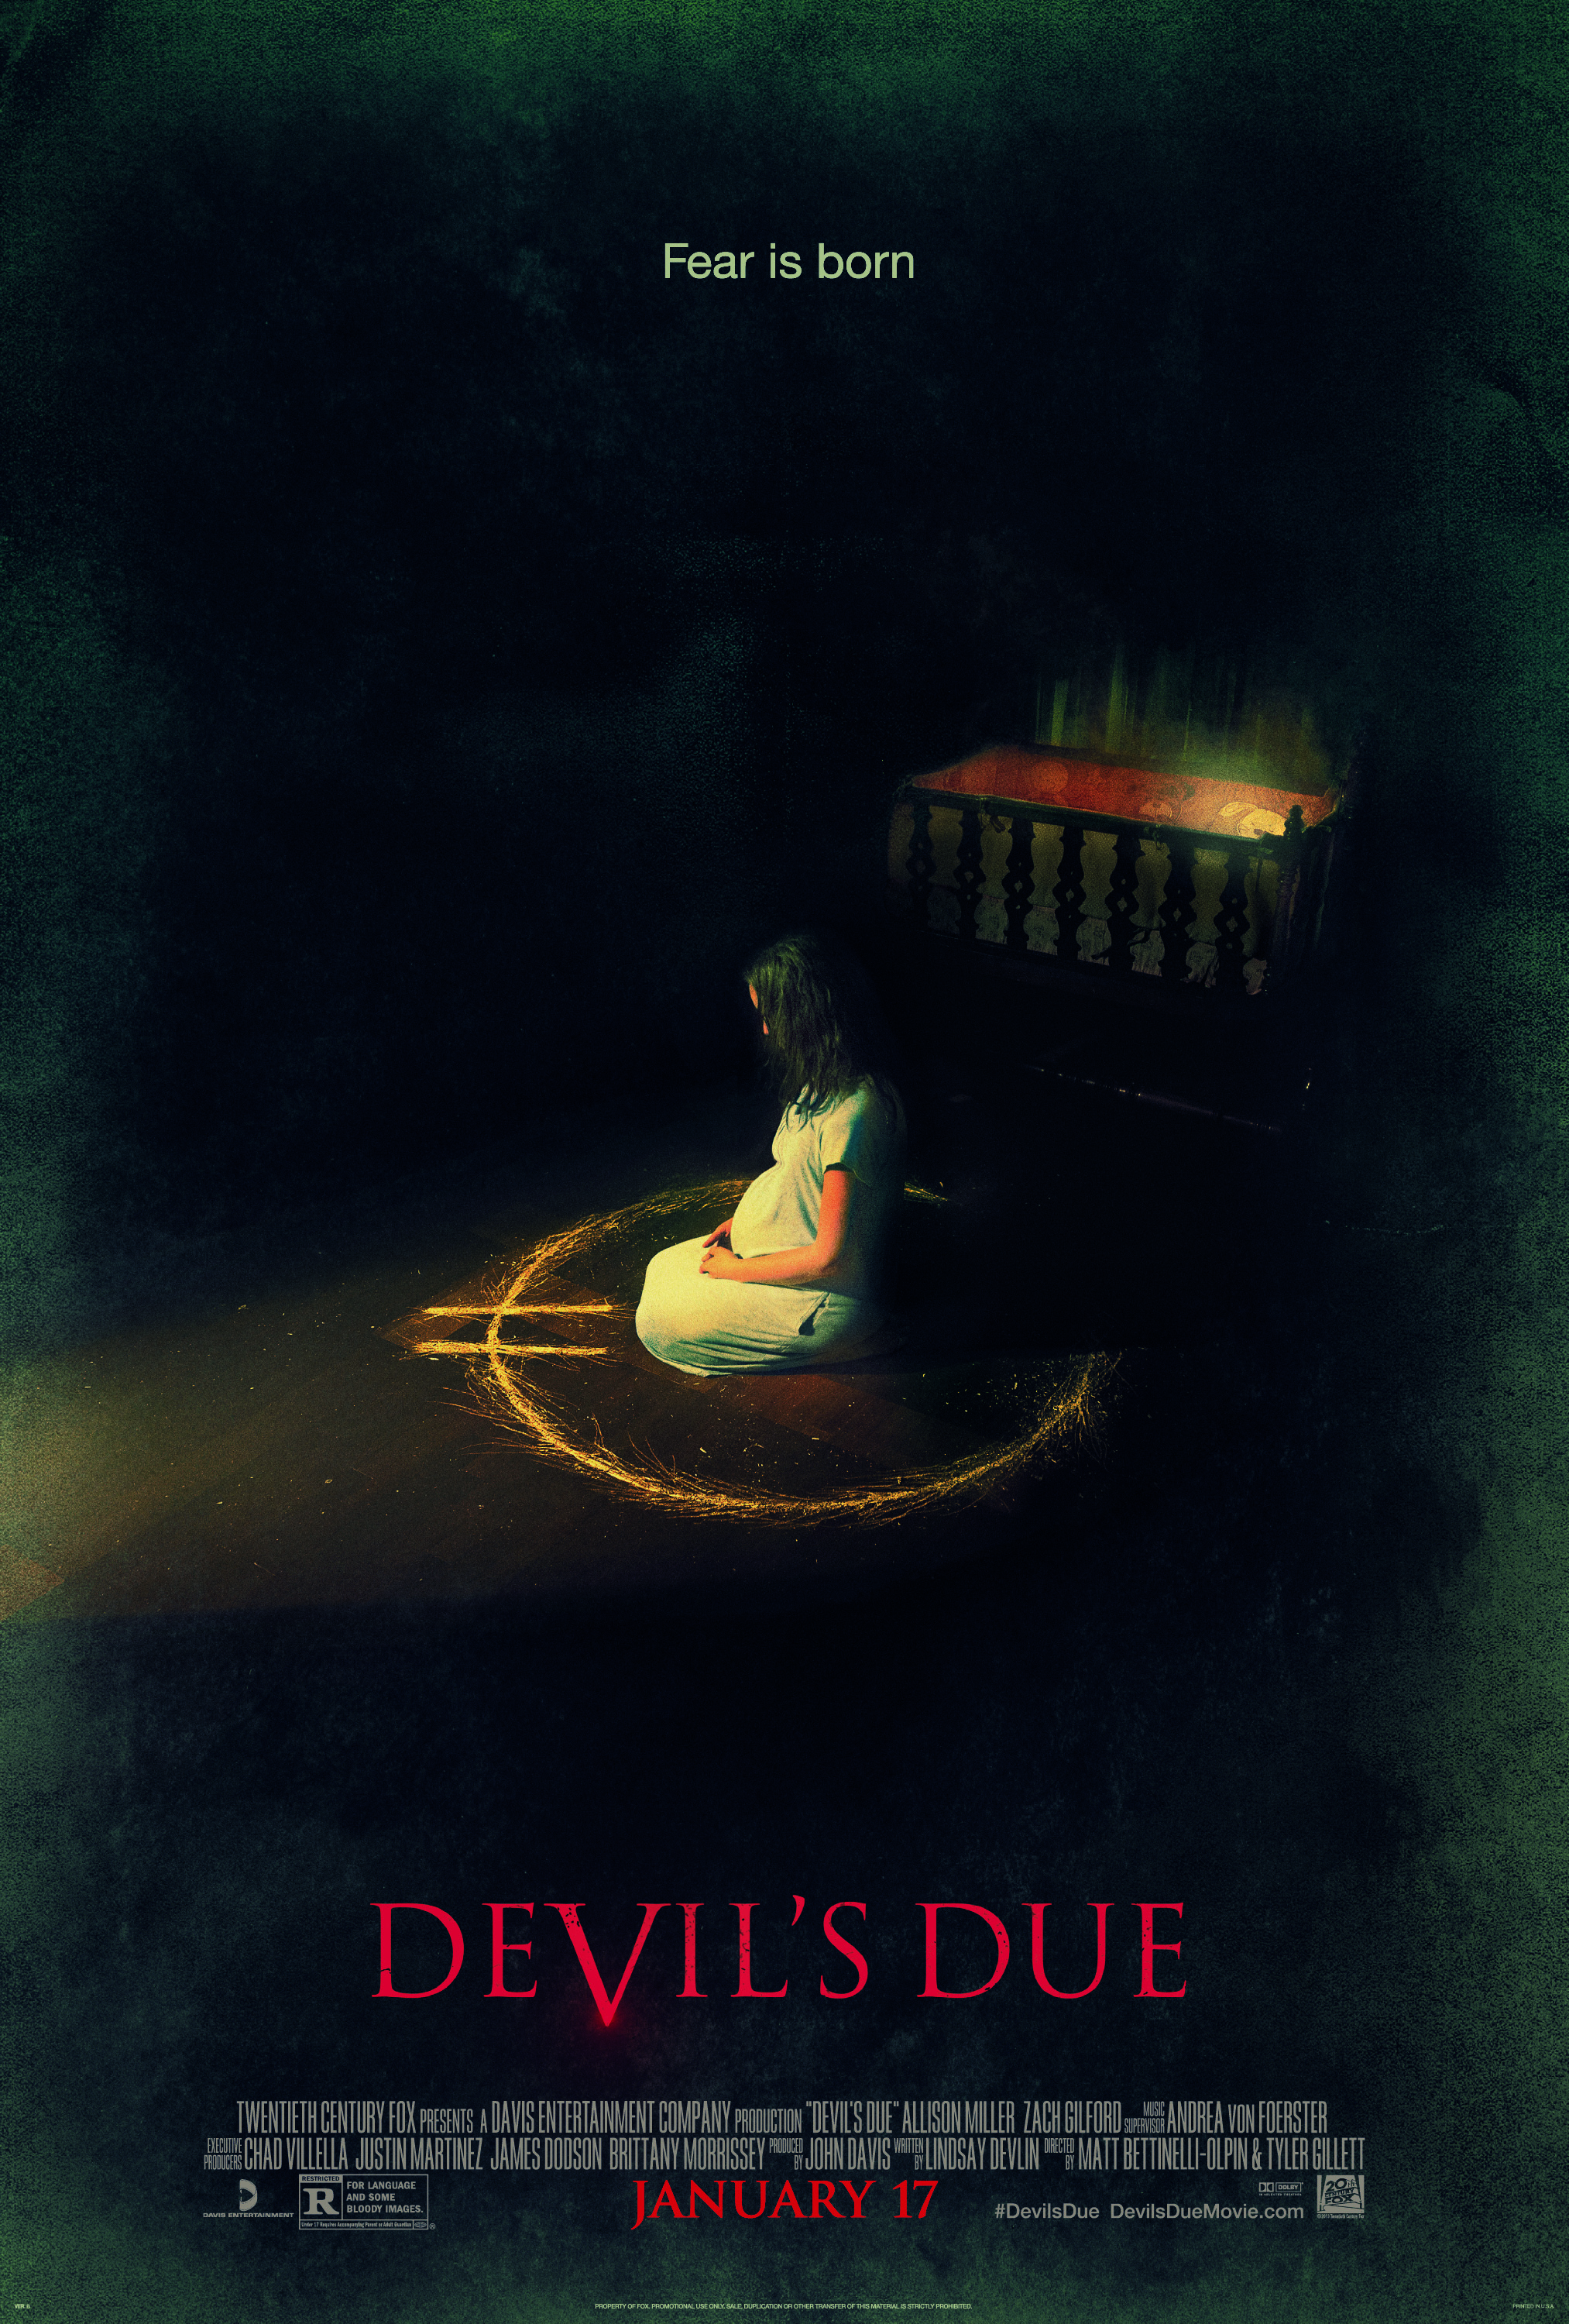 DevilsDue_VerB_Poster WITH CREDIT BLOCK.jpg